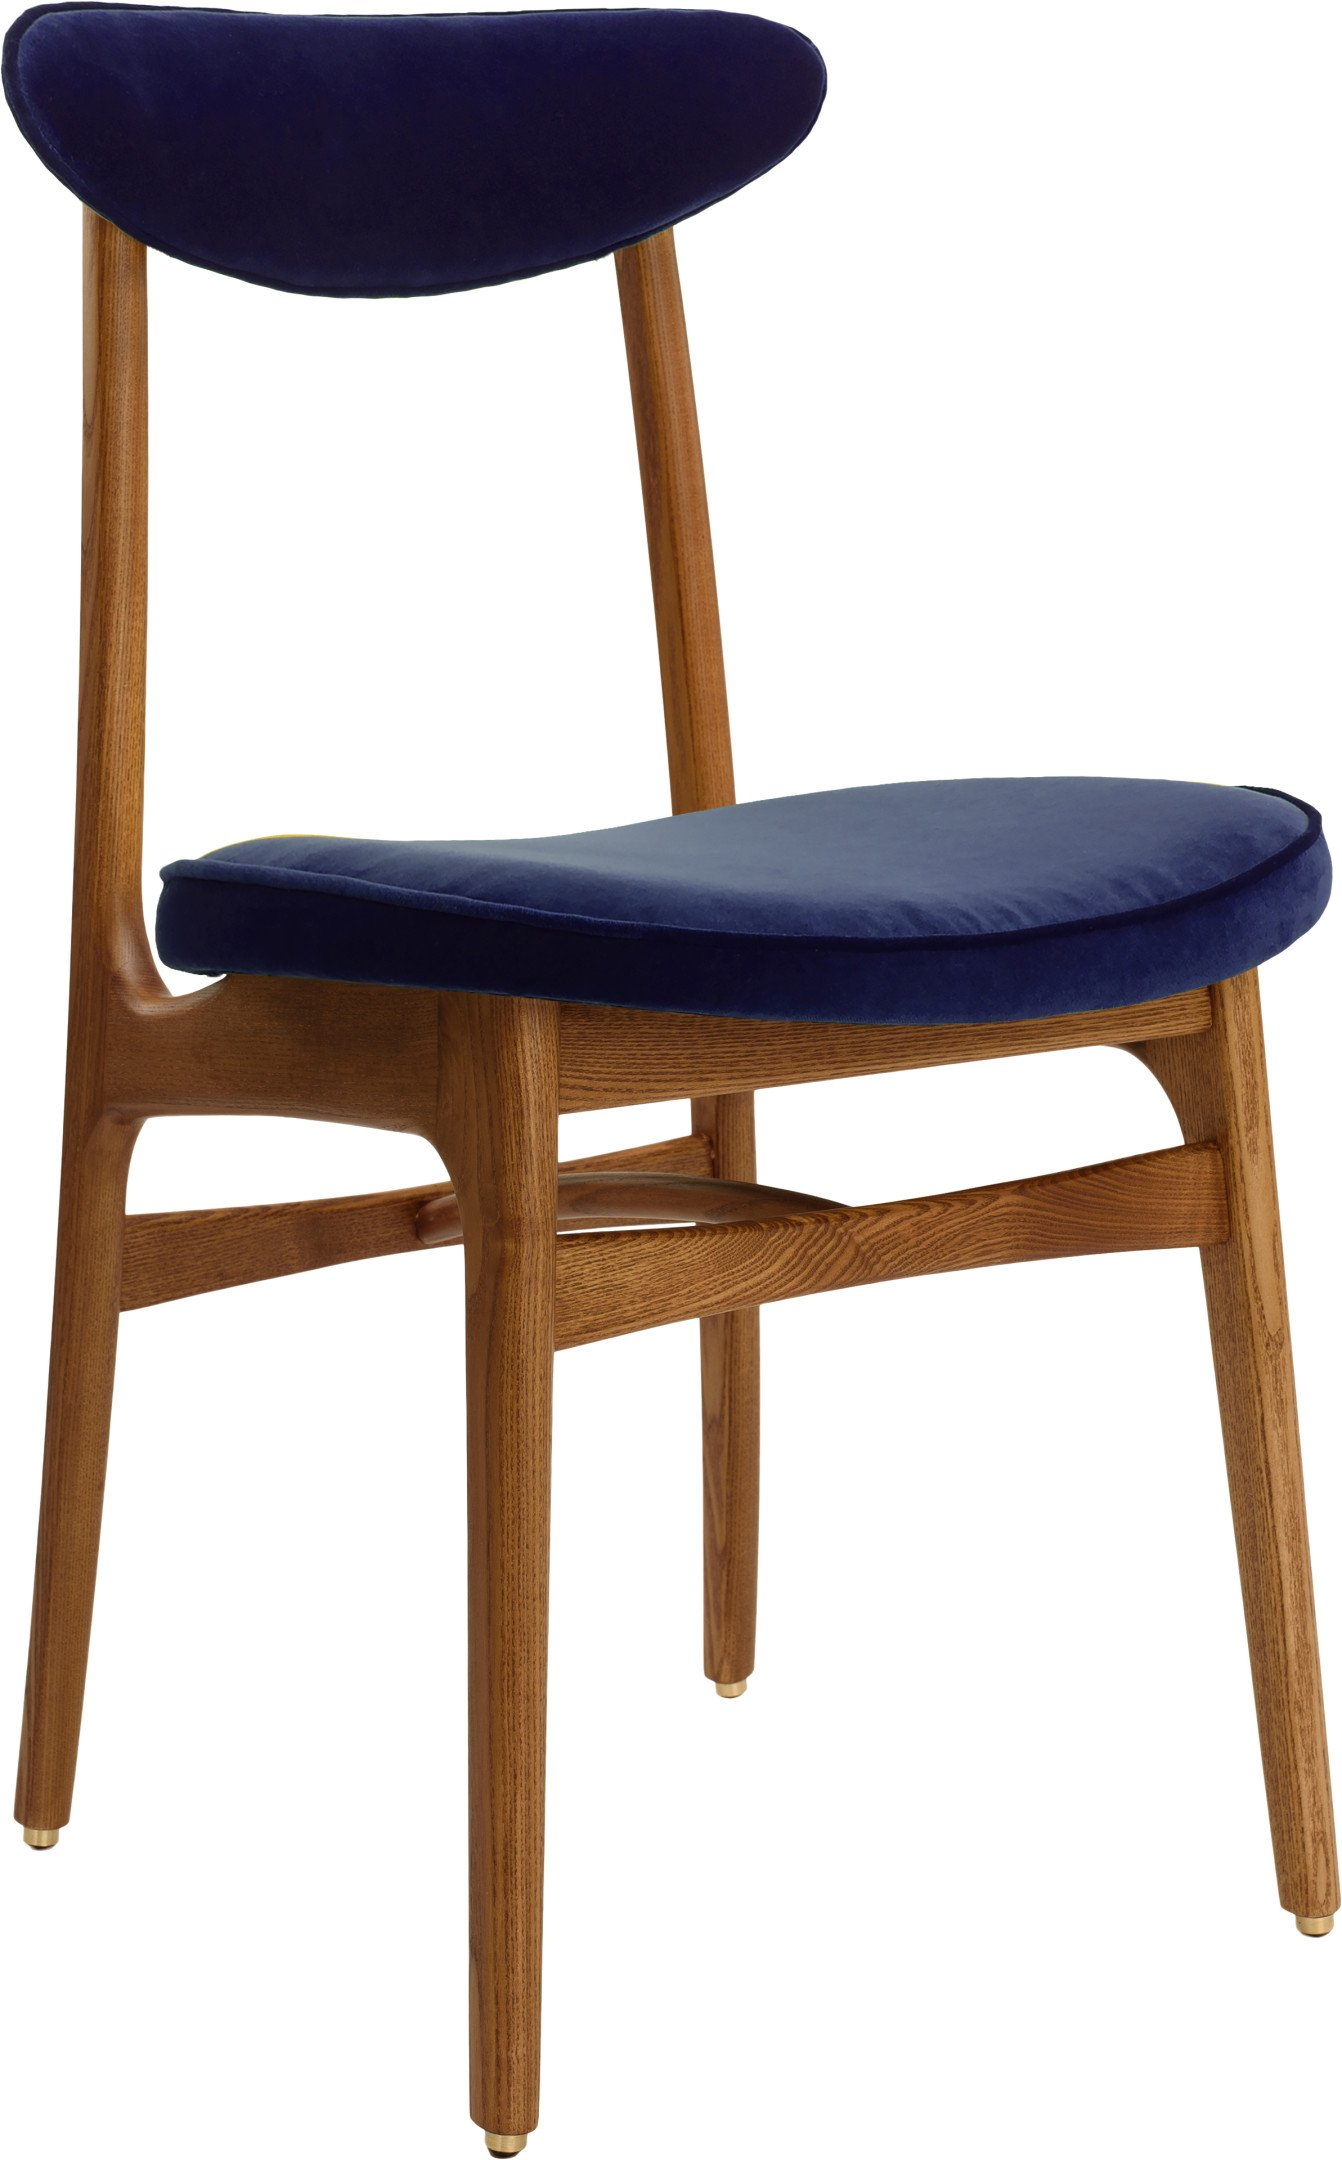 Chair 200-190 by R.T. Hałas, Velvet Indigo (dark ash)